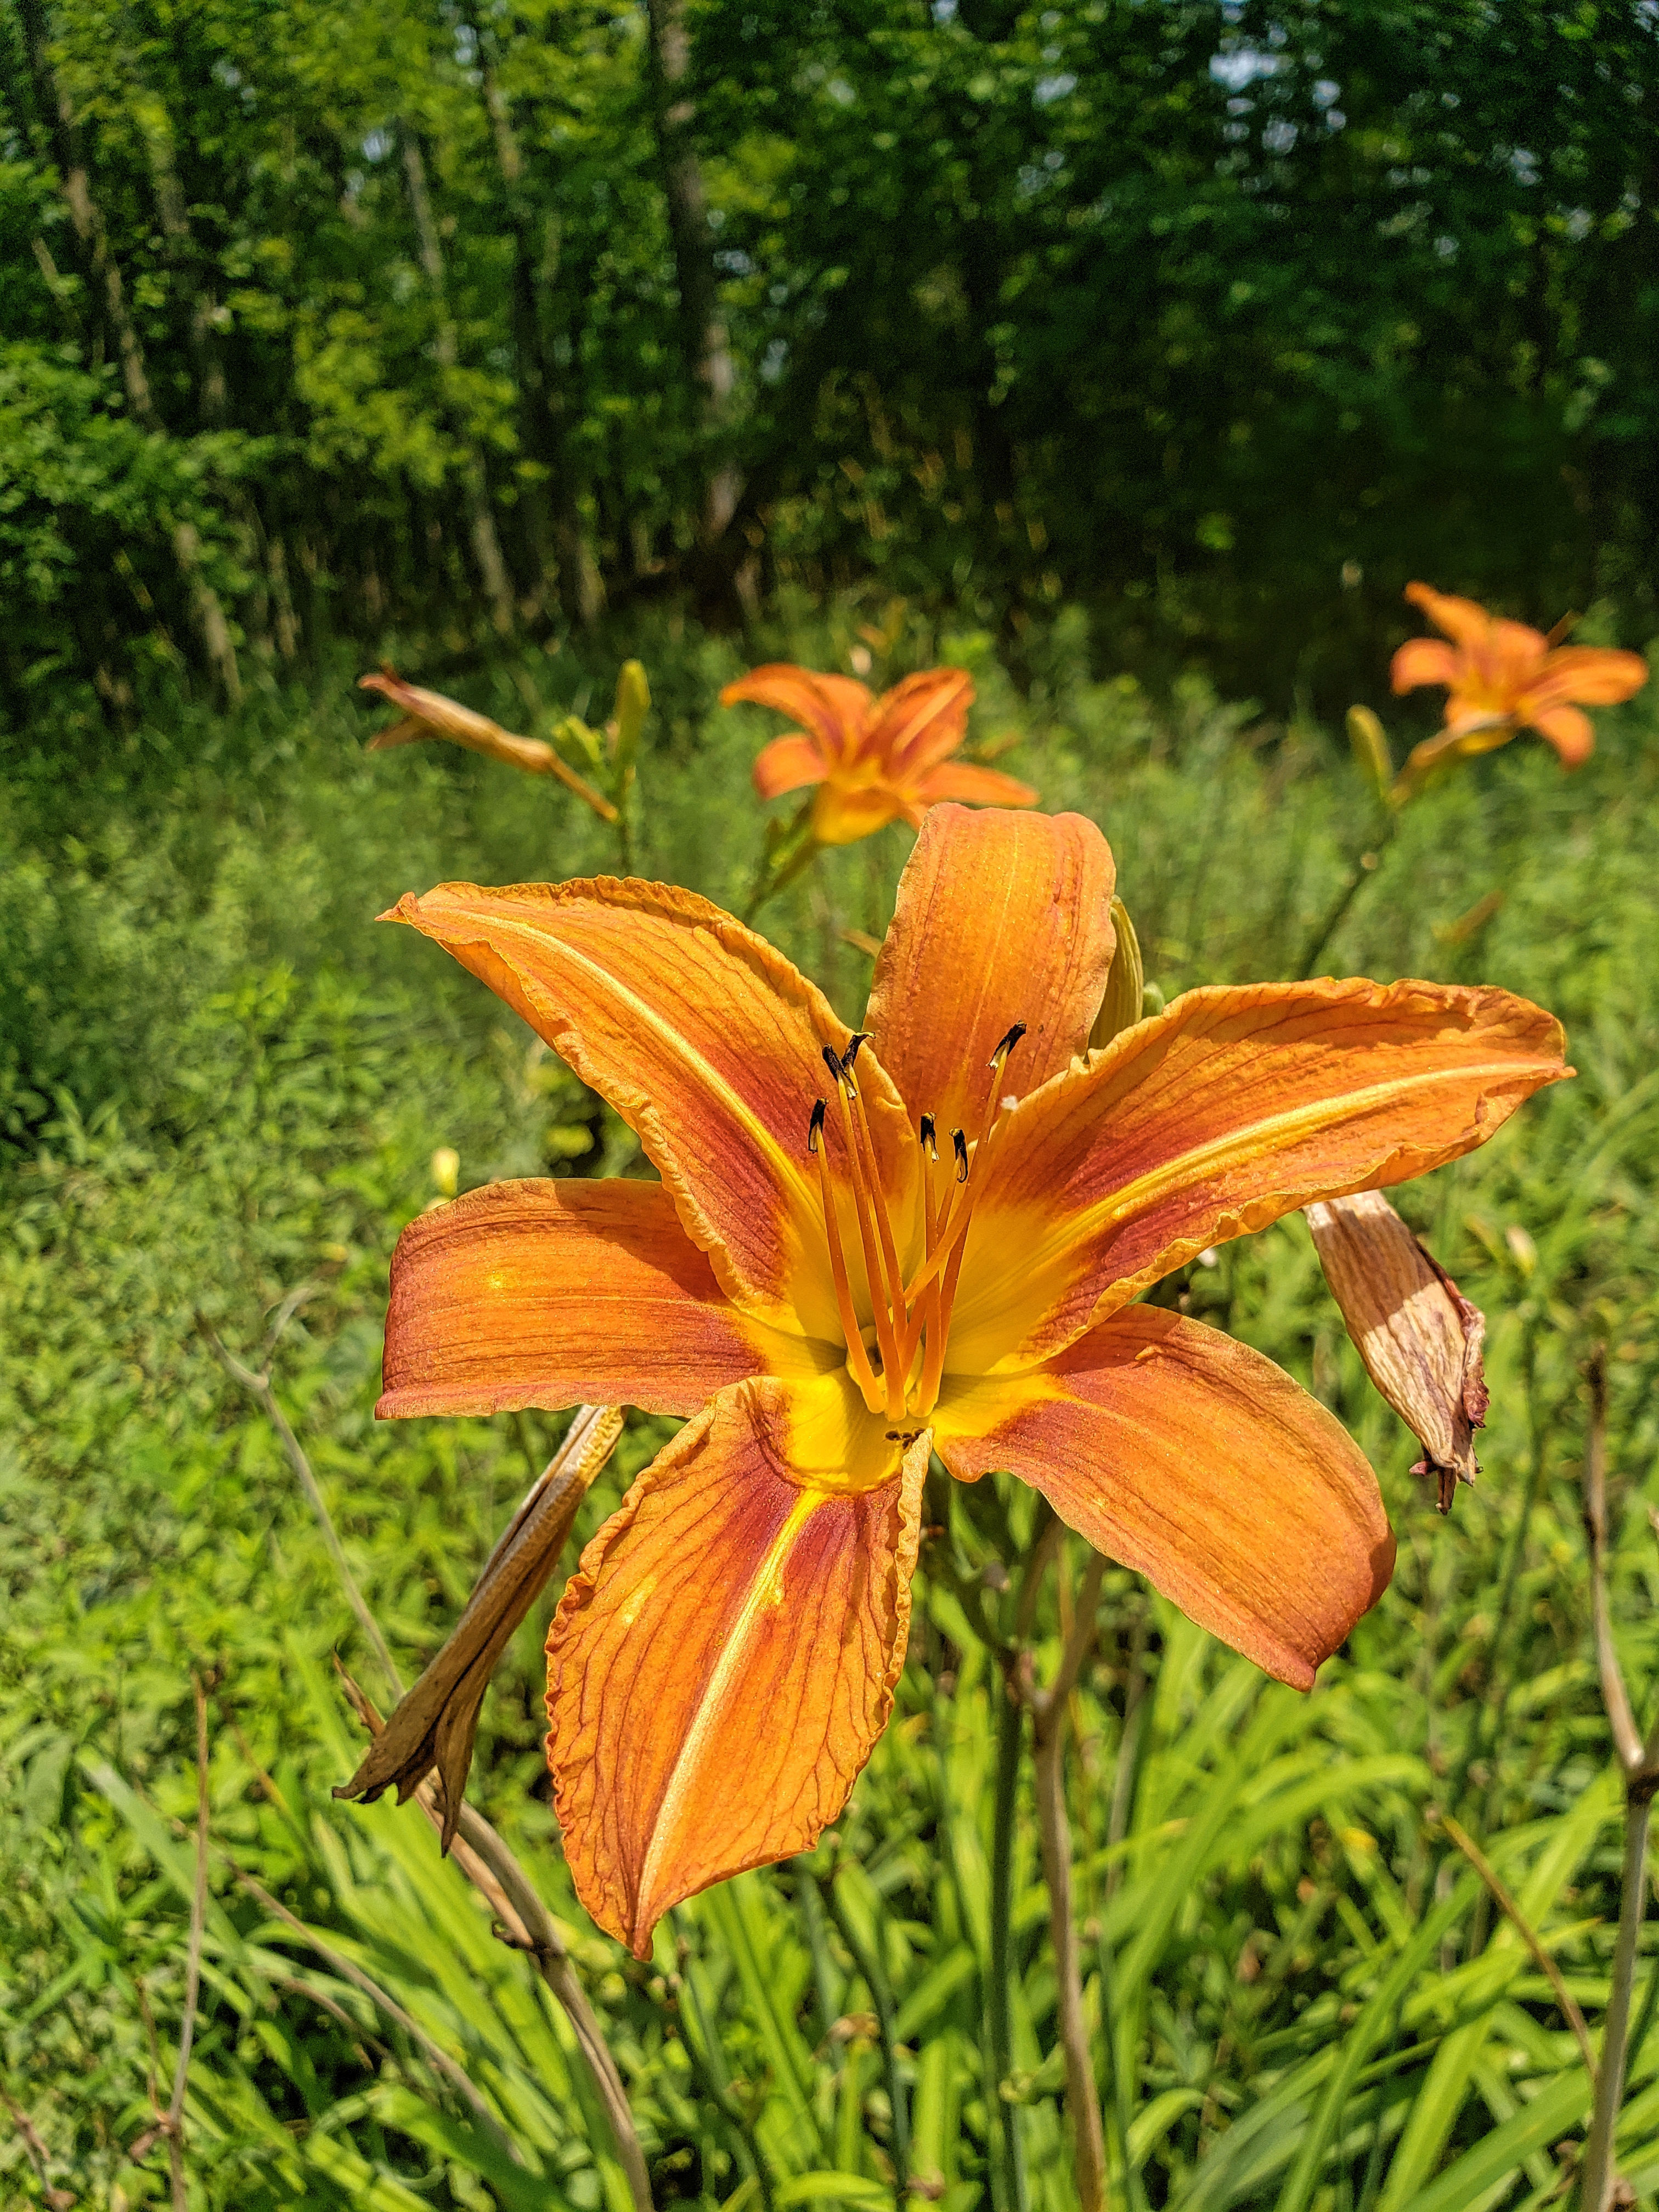 Day Lilly's are just some of the flowers you can find at Wolcott Mills.